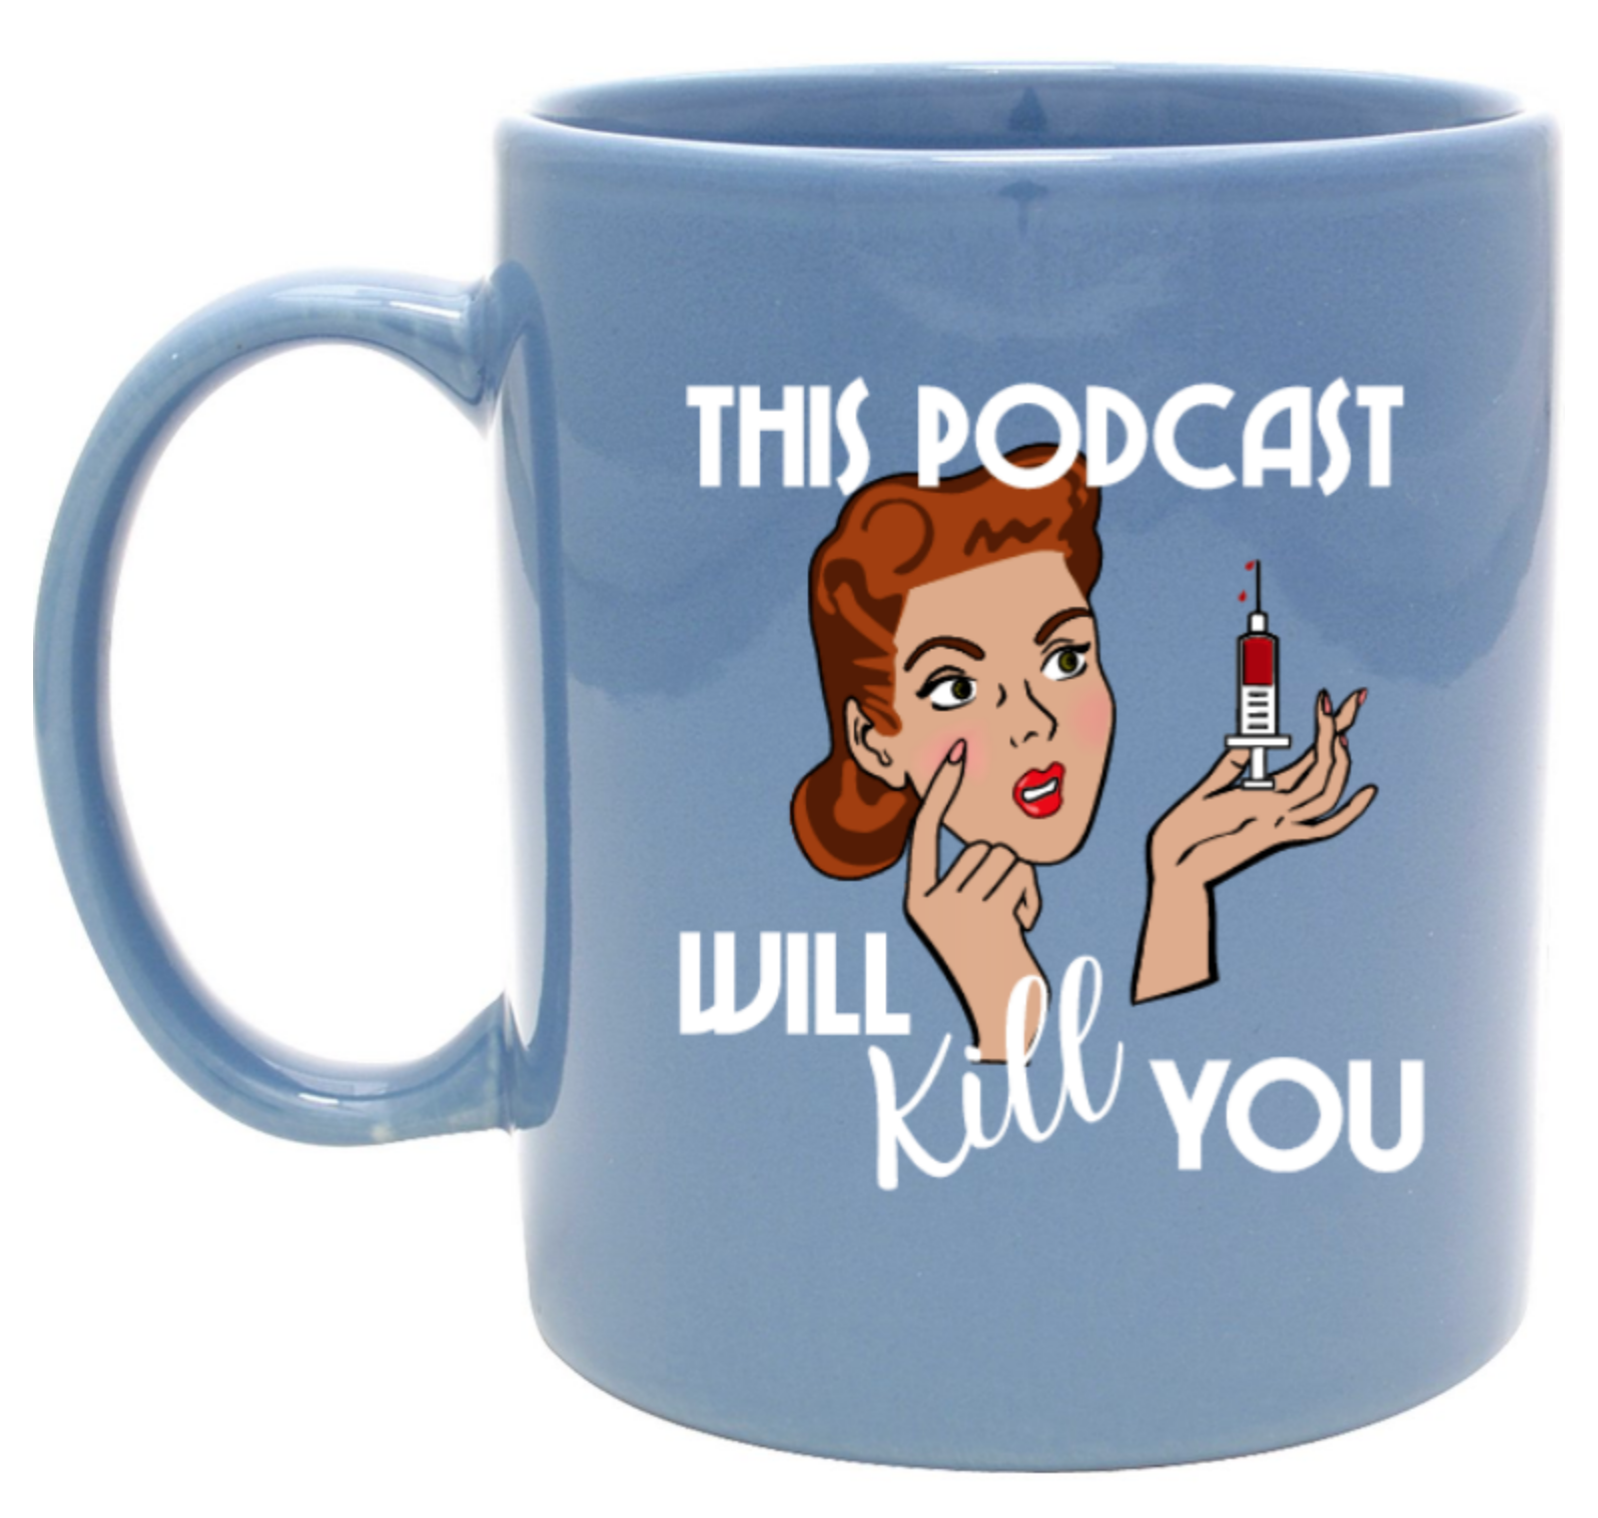 This Podcast Will Kill You: Mug $18.00